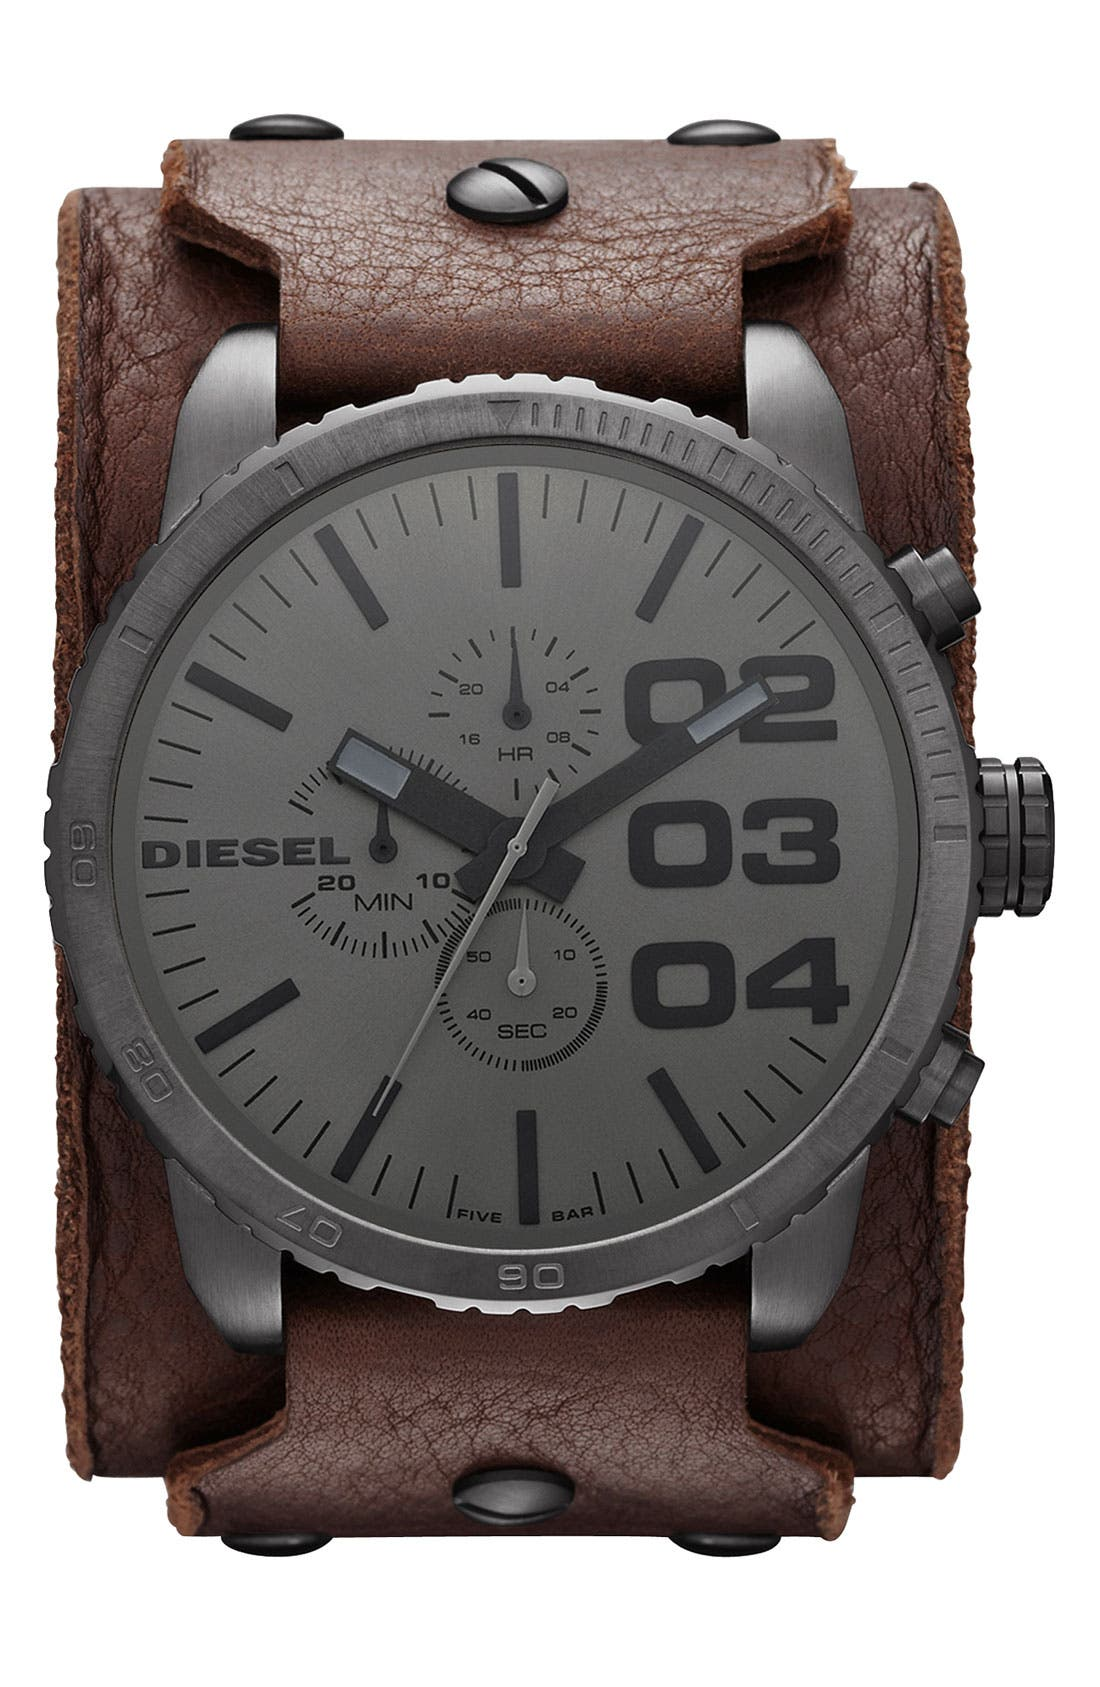 Main Image - DIESEL® 'Franchise' Large Leather Cuff Watch, 51mm